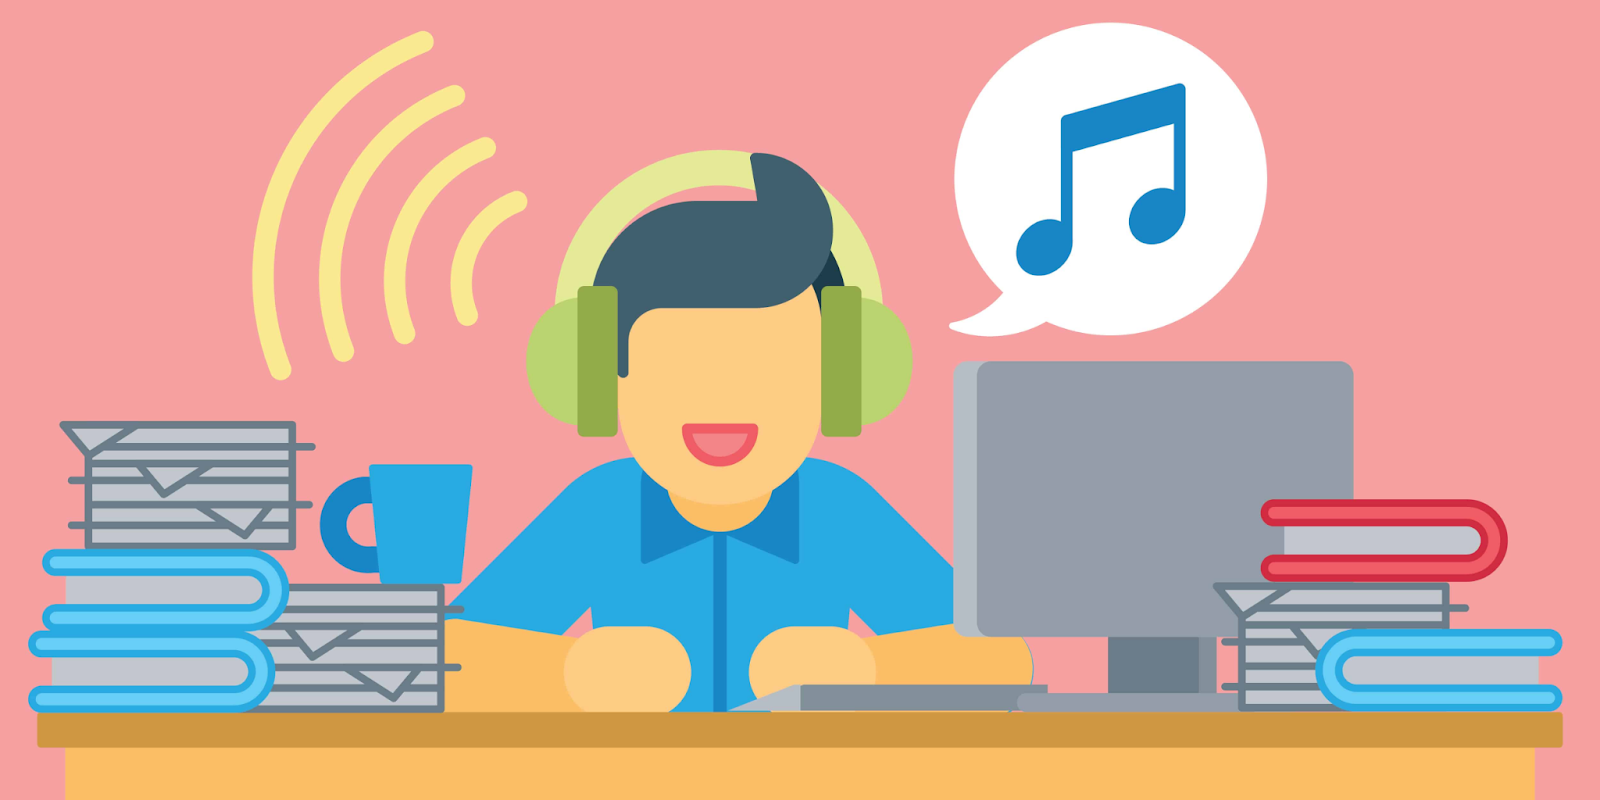 Create music with your material can help in online learning